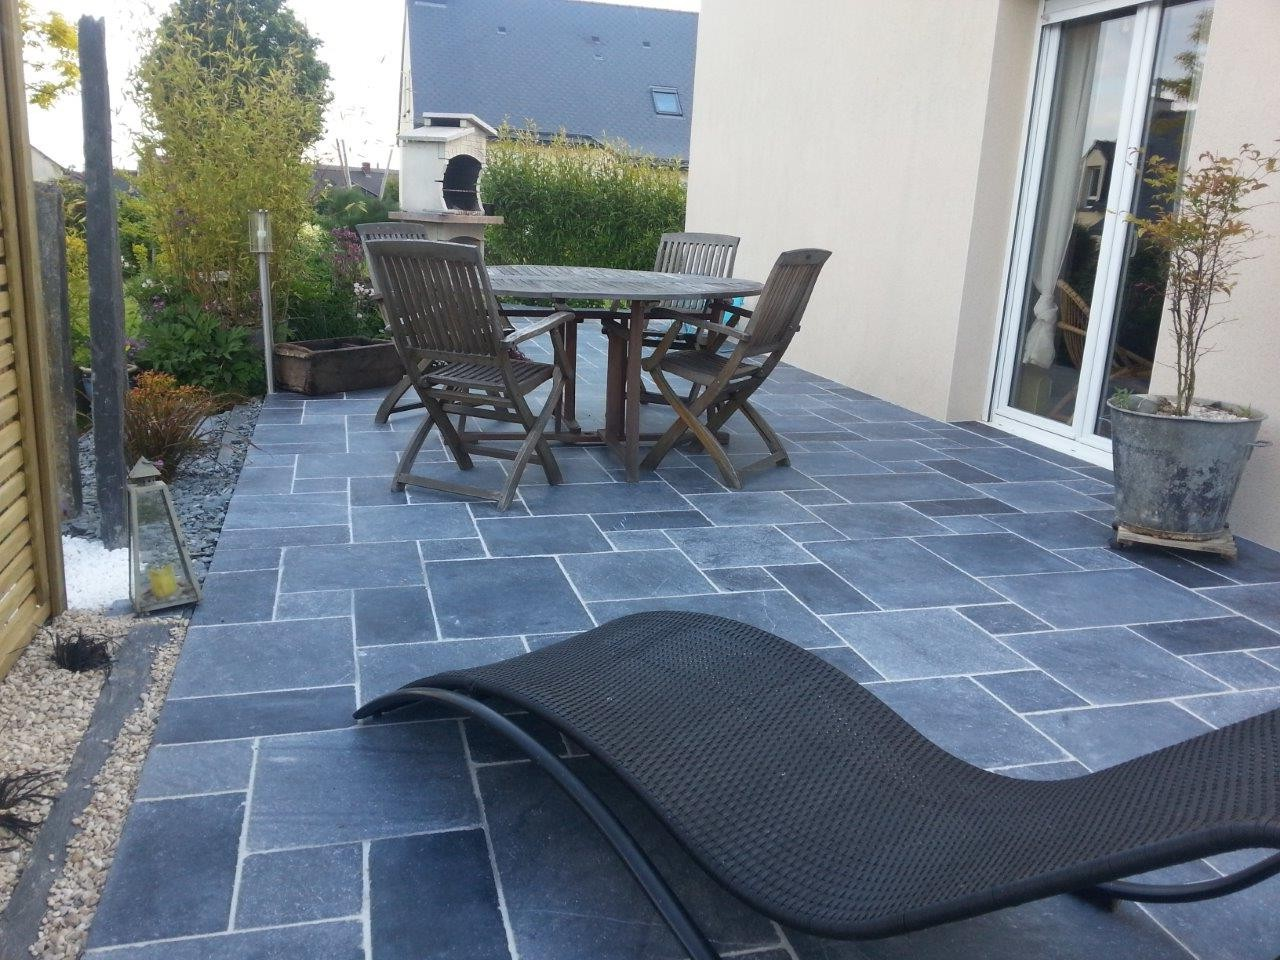 Carrelage exterieur imitation bleue 28 images for Carrelage exterieur terrasse